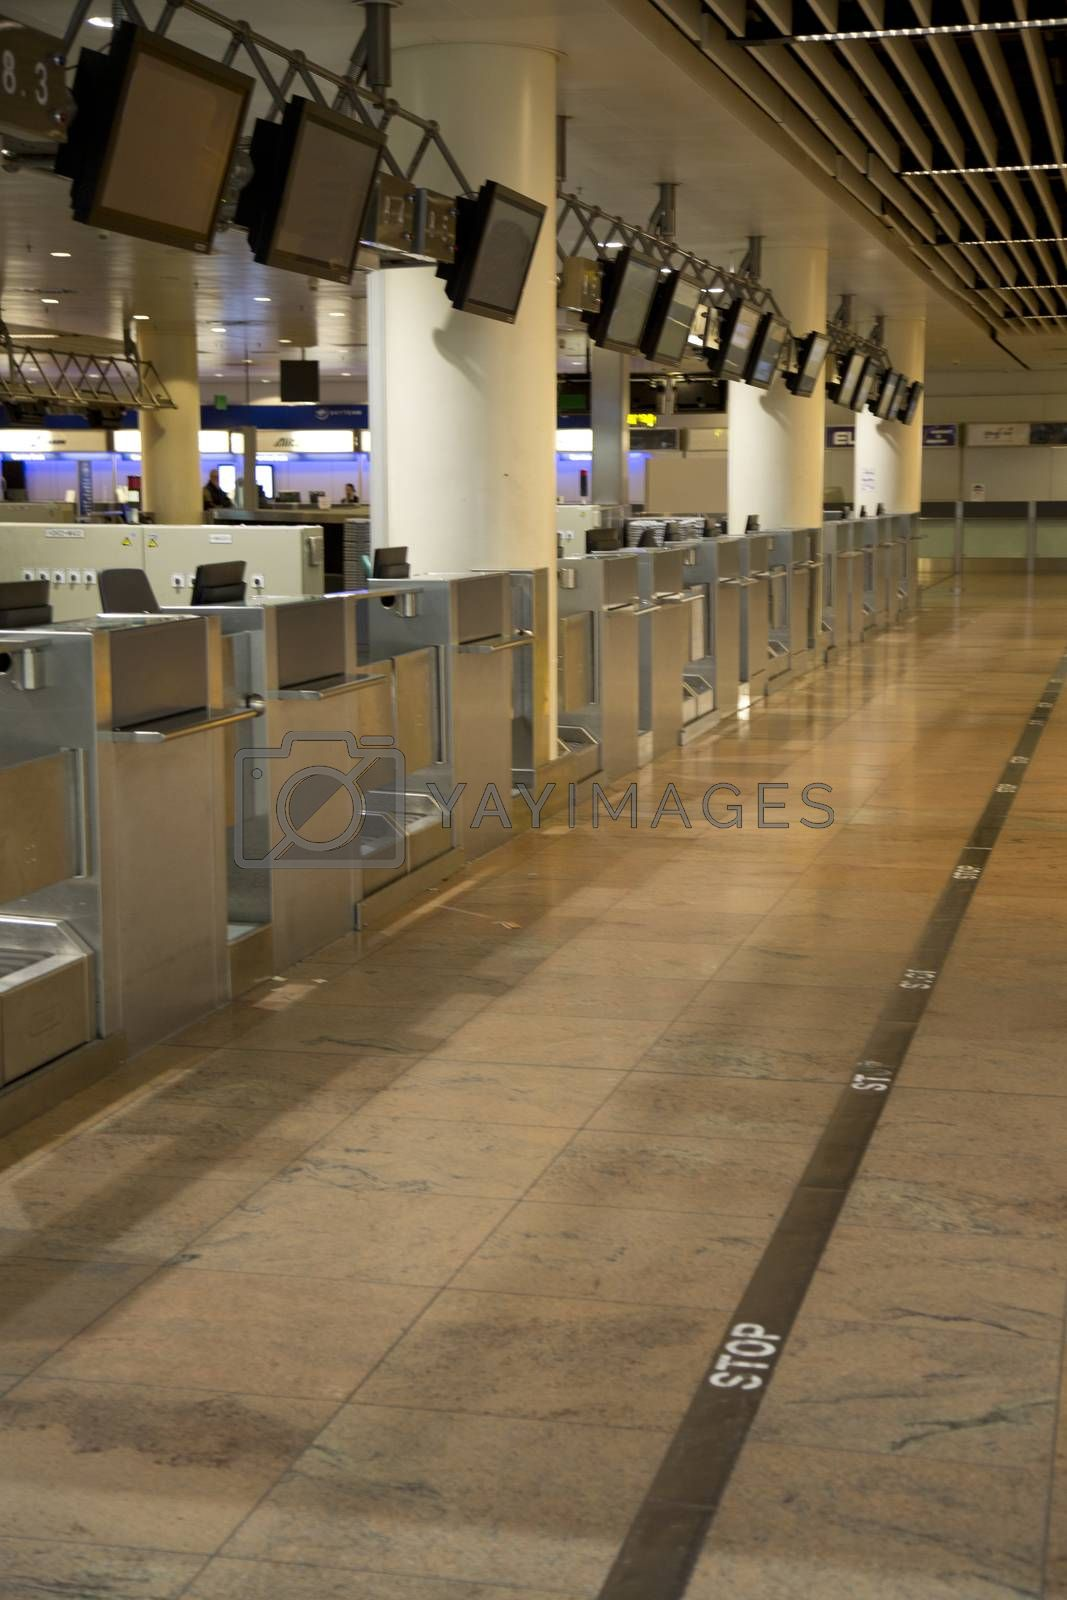 Empty departure gates in airport terminal